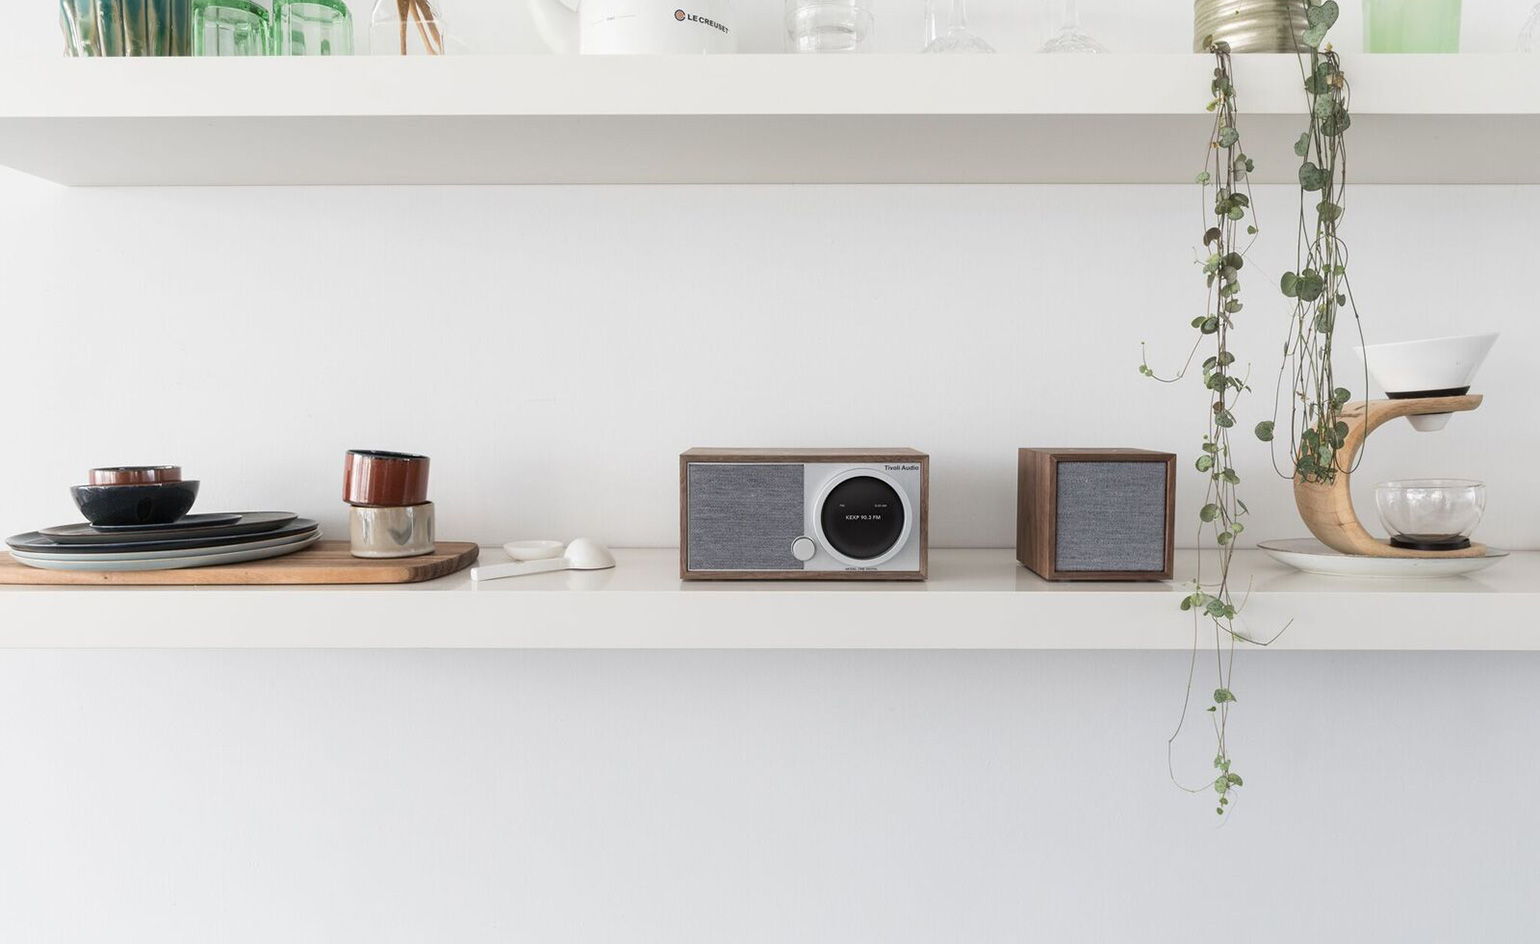 Tivoli audio speaker in a lifestyle setting